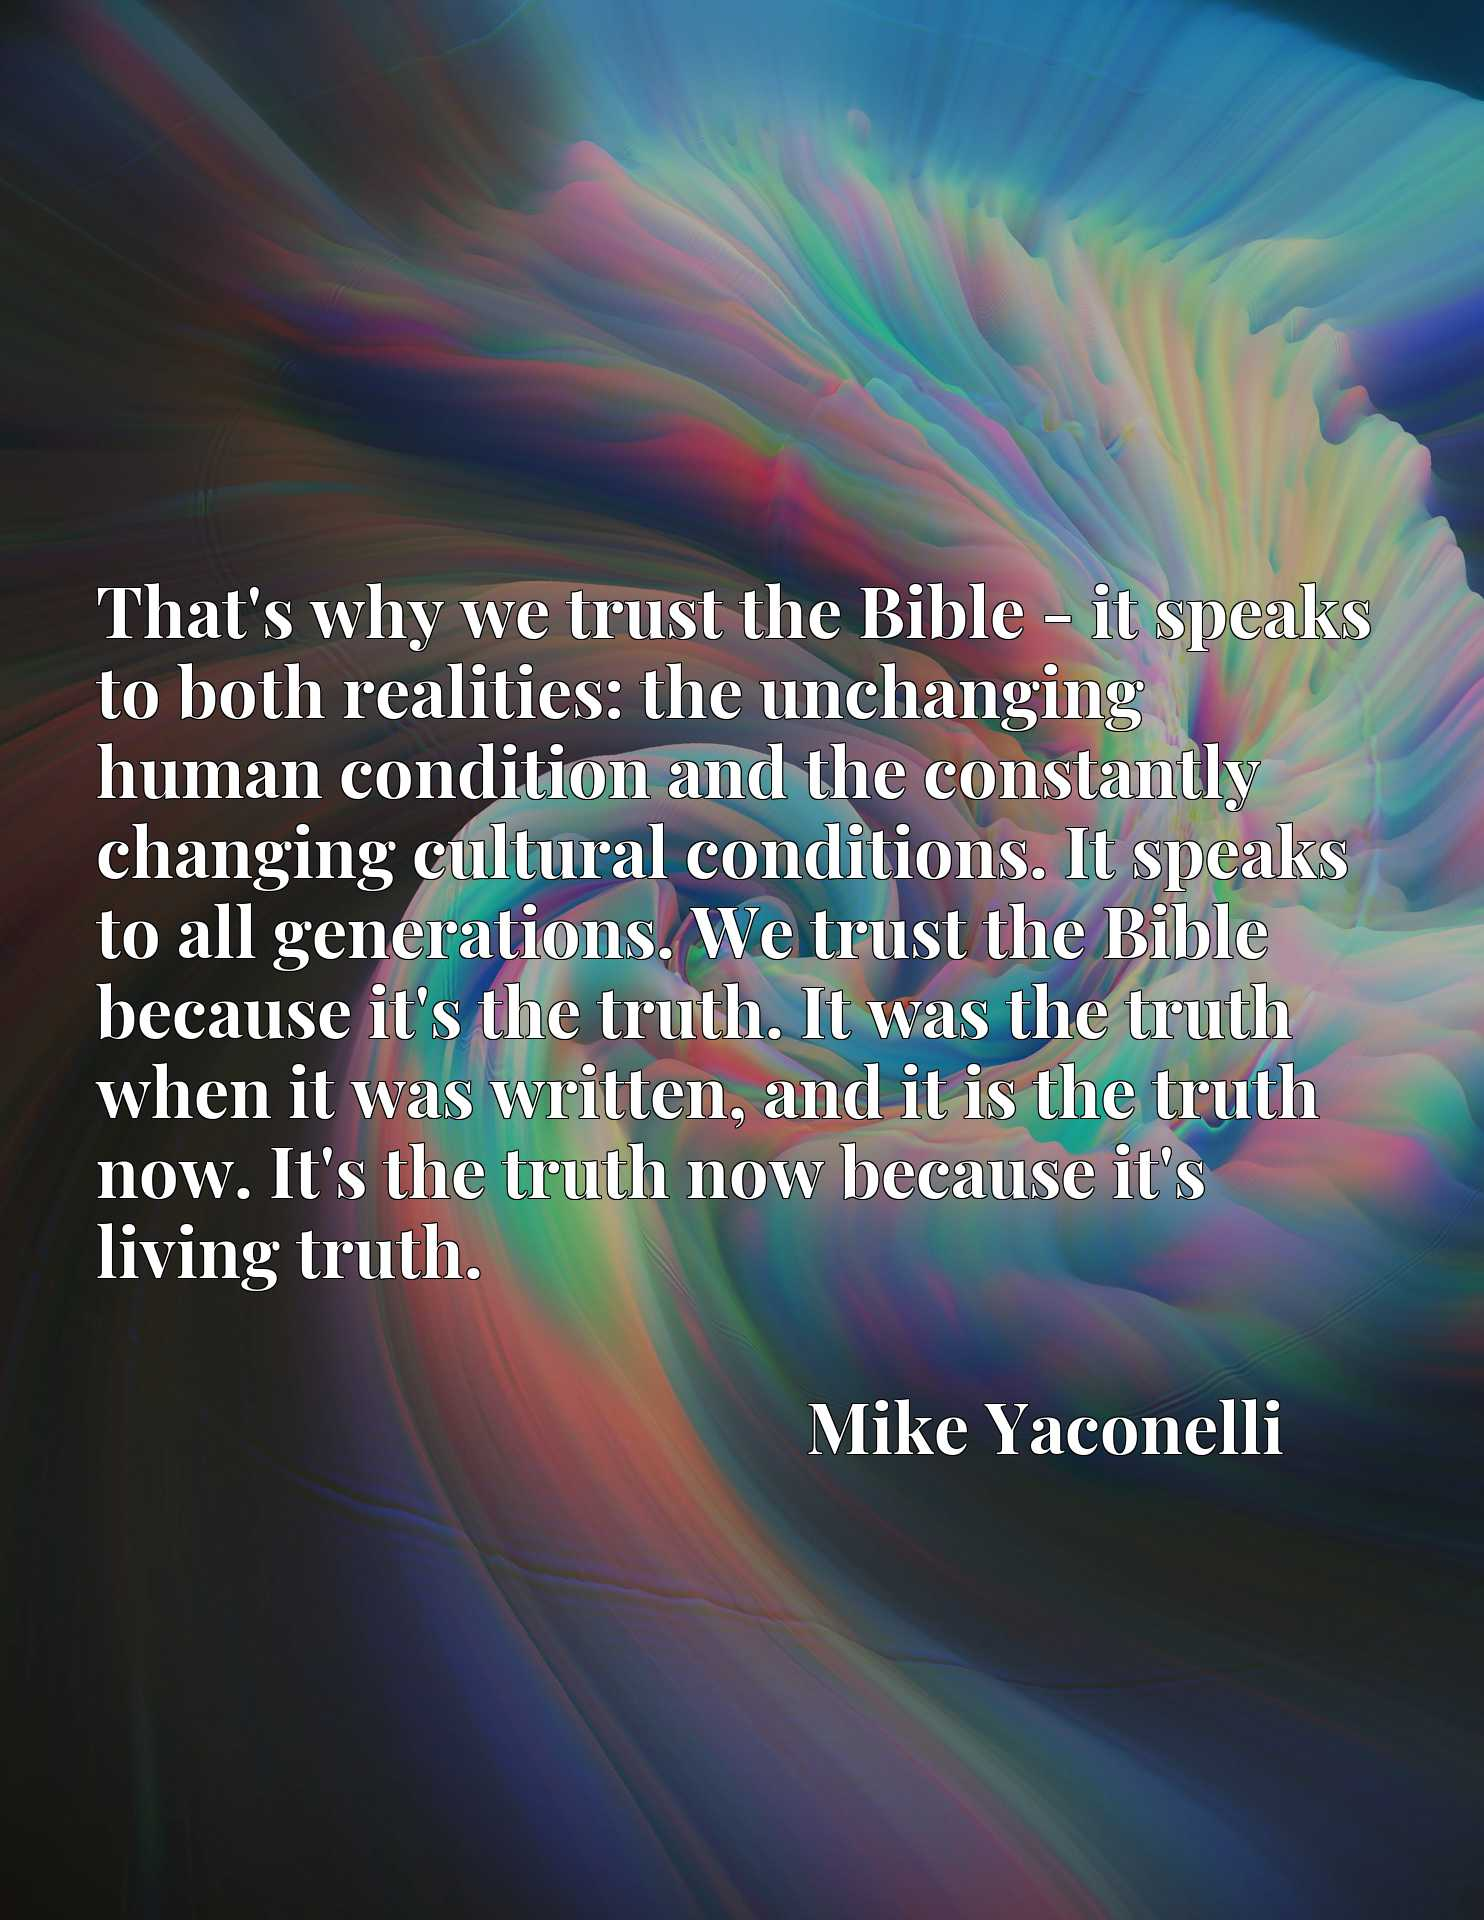 That's why we trust the Bible - it speaks to both realities: the unchanging human condition and the constantly changing cultural conditions. It speaks to all generations. We trust the Bible because it's the truth. It was the truth when it was written, and it is the truth now. It's the truth now because it's living truth.